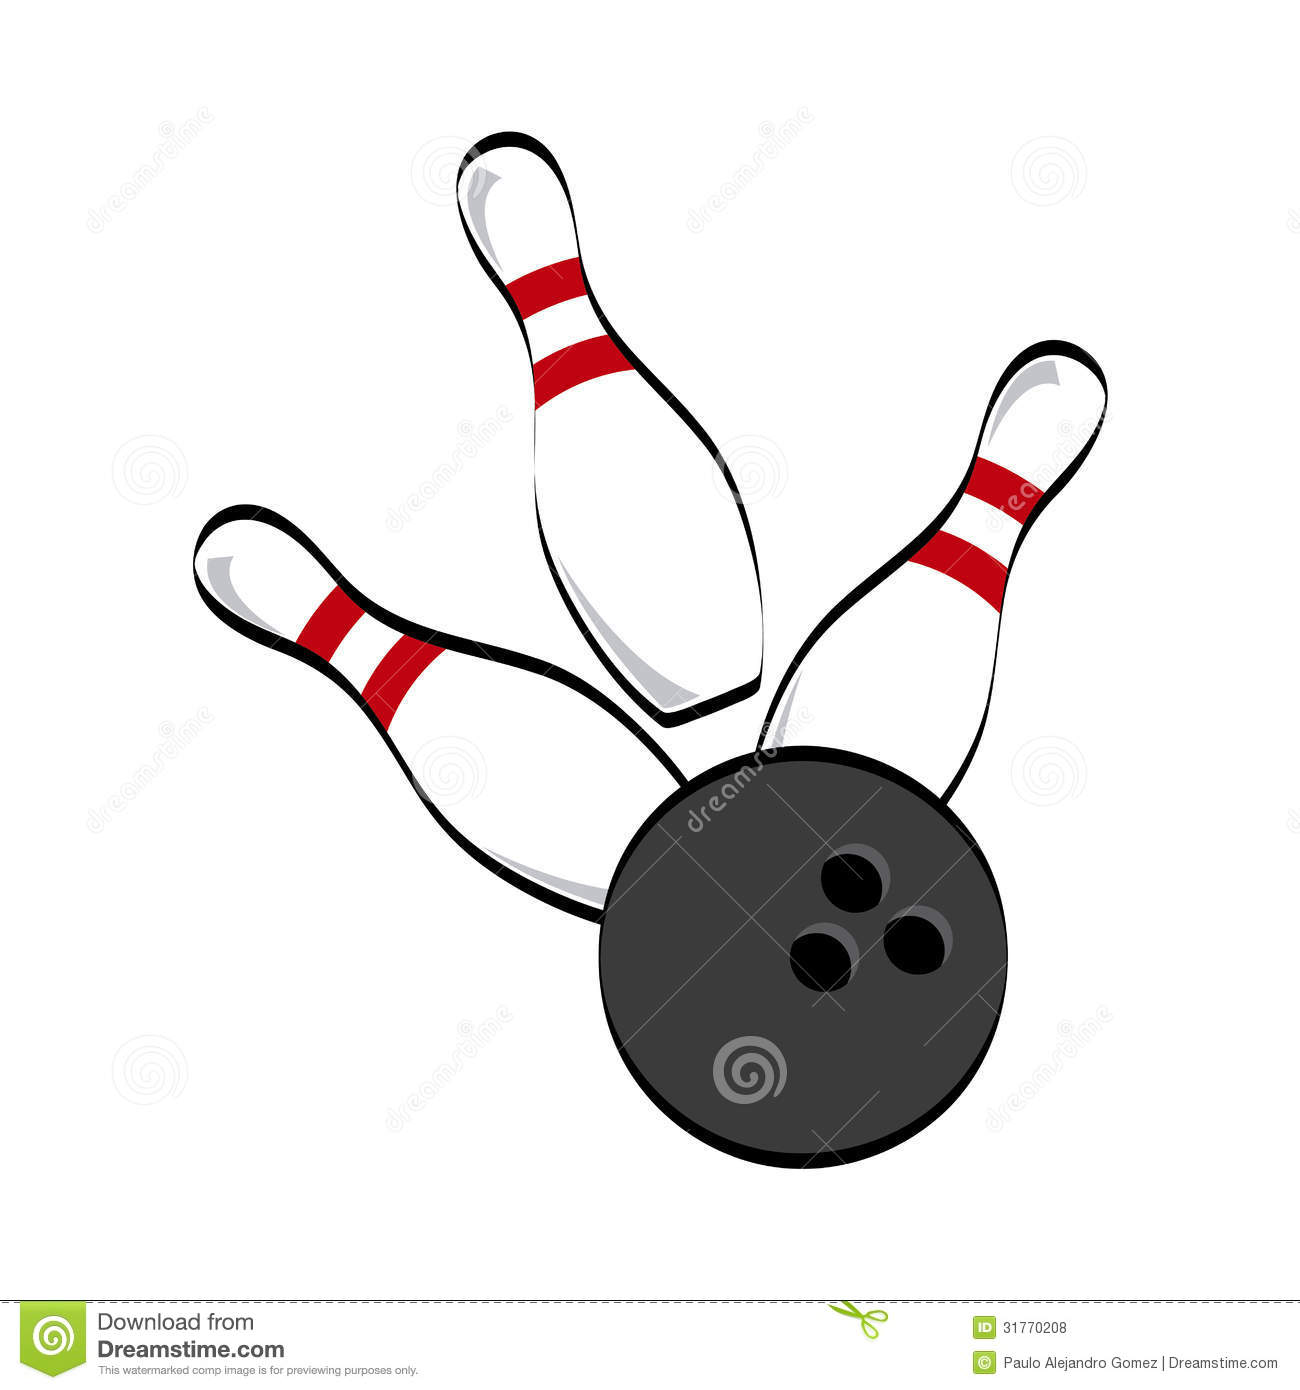 Bowling Icon Royalty Free Stock Photos - Image: 31770208